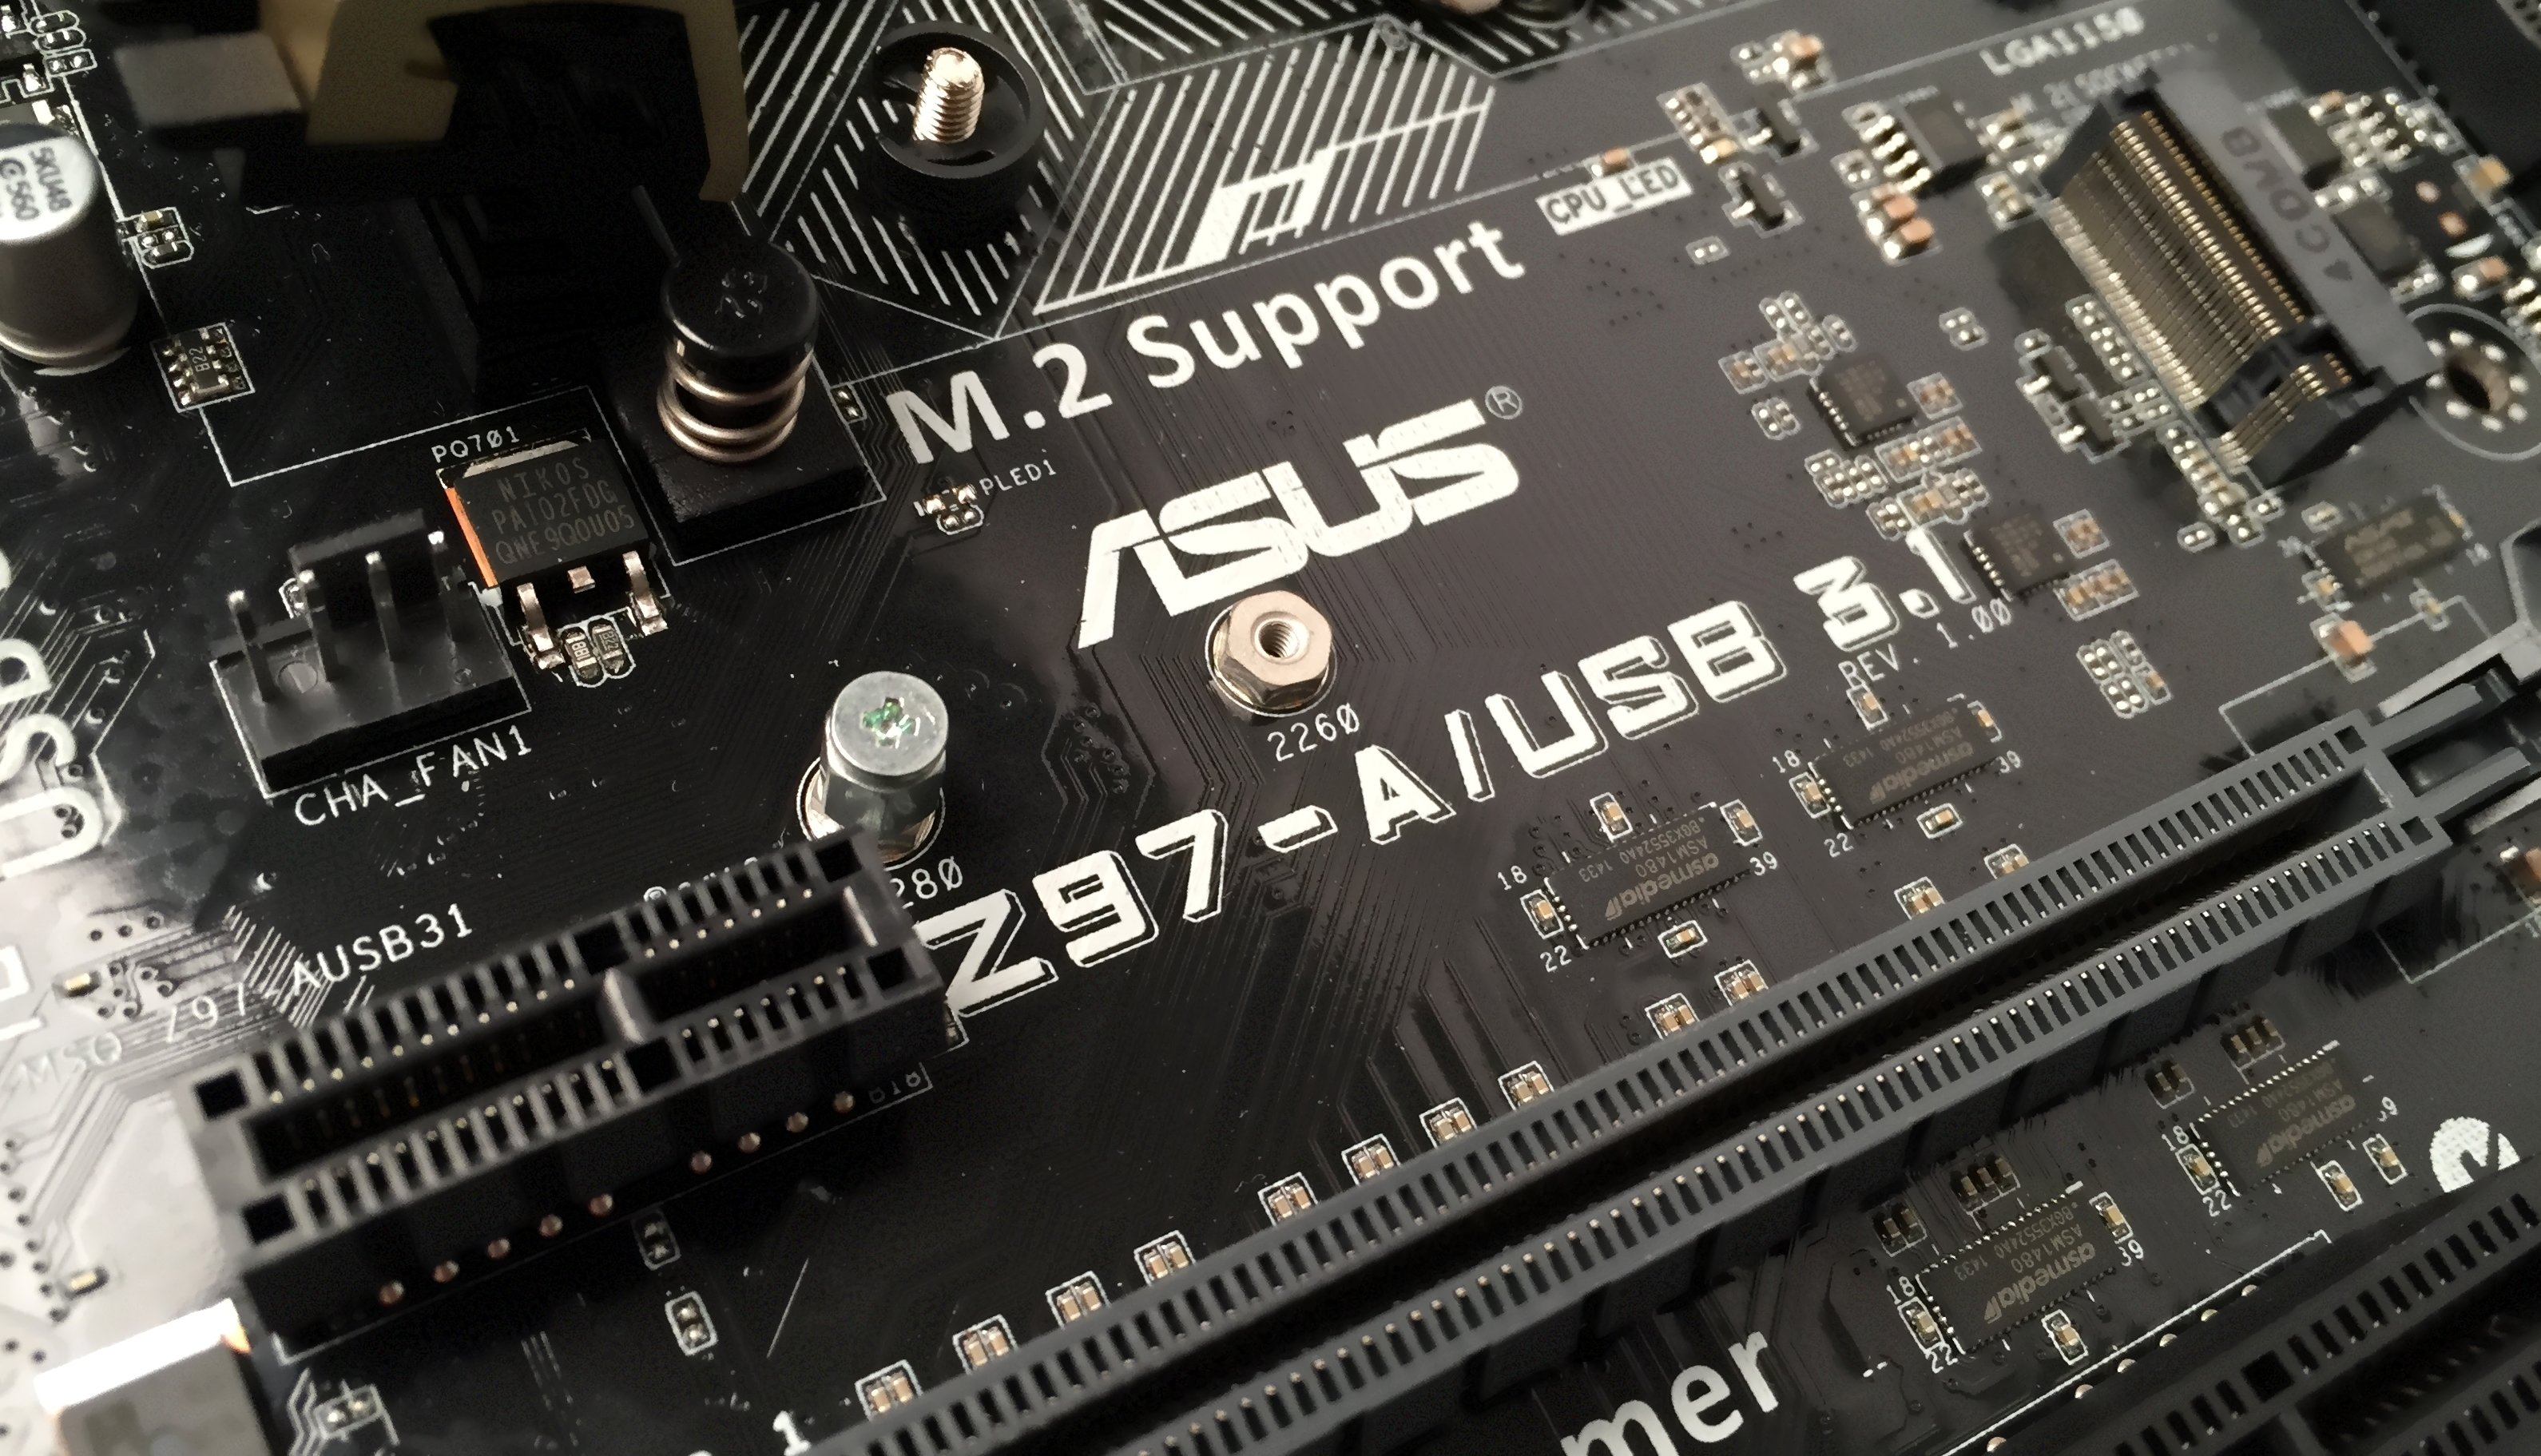 Asus Z97-A/USB 3.1 Motherboard Driver for Windows 7